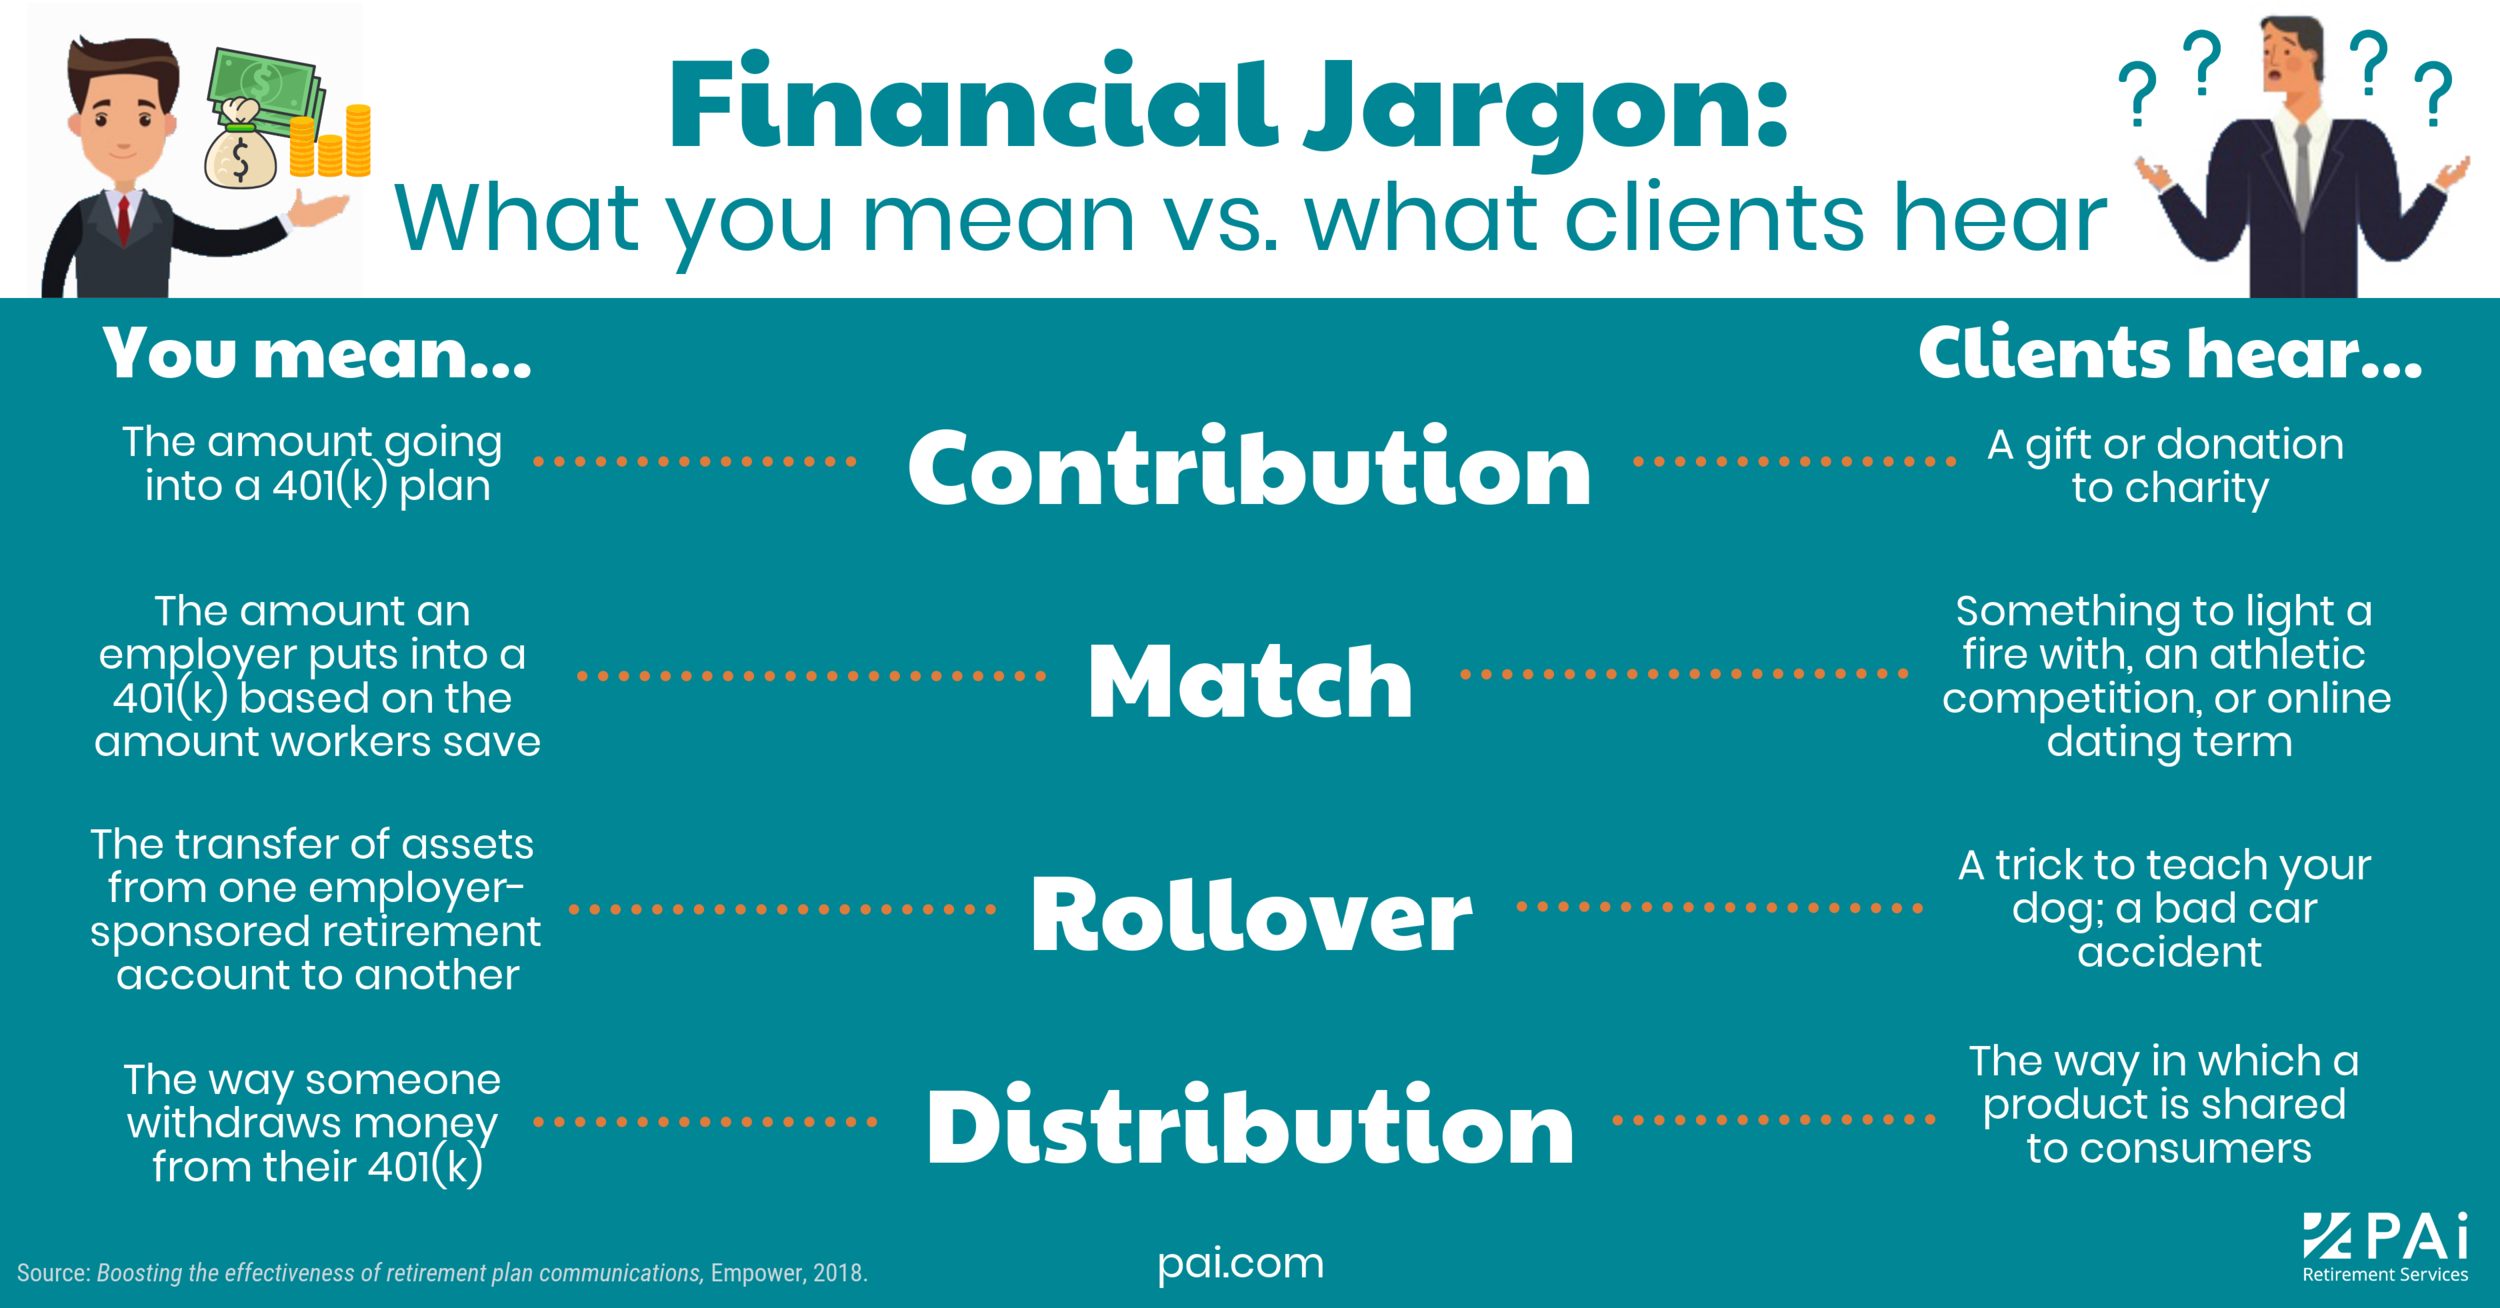 Financial jargon meanings and definitions